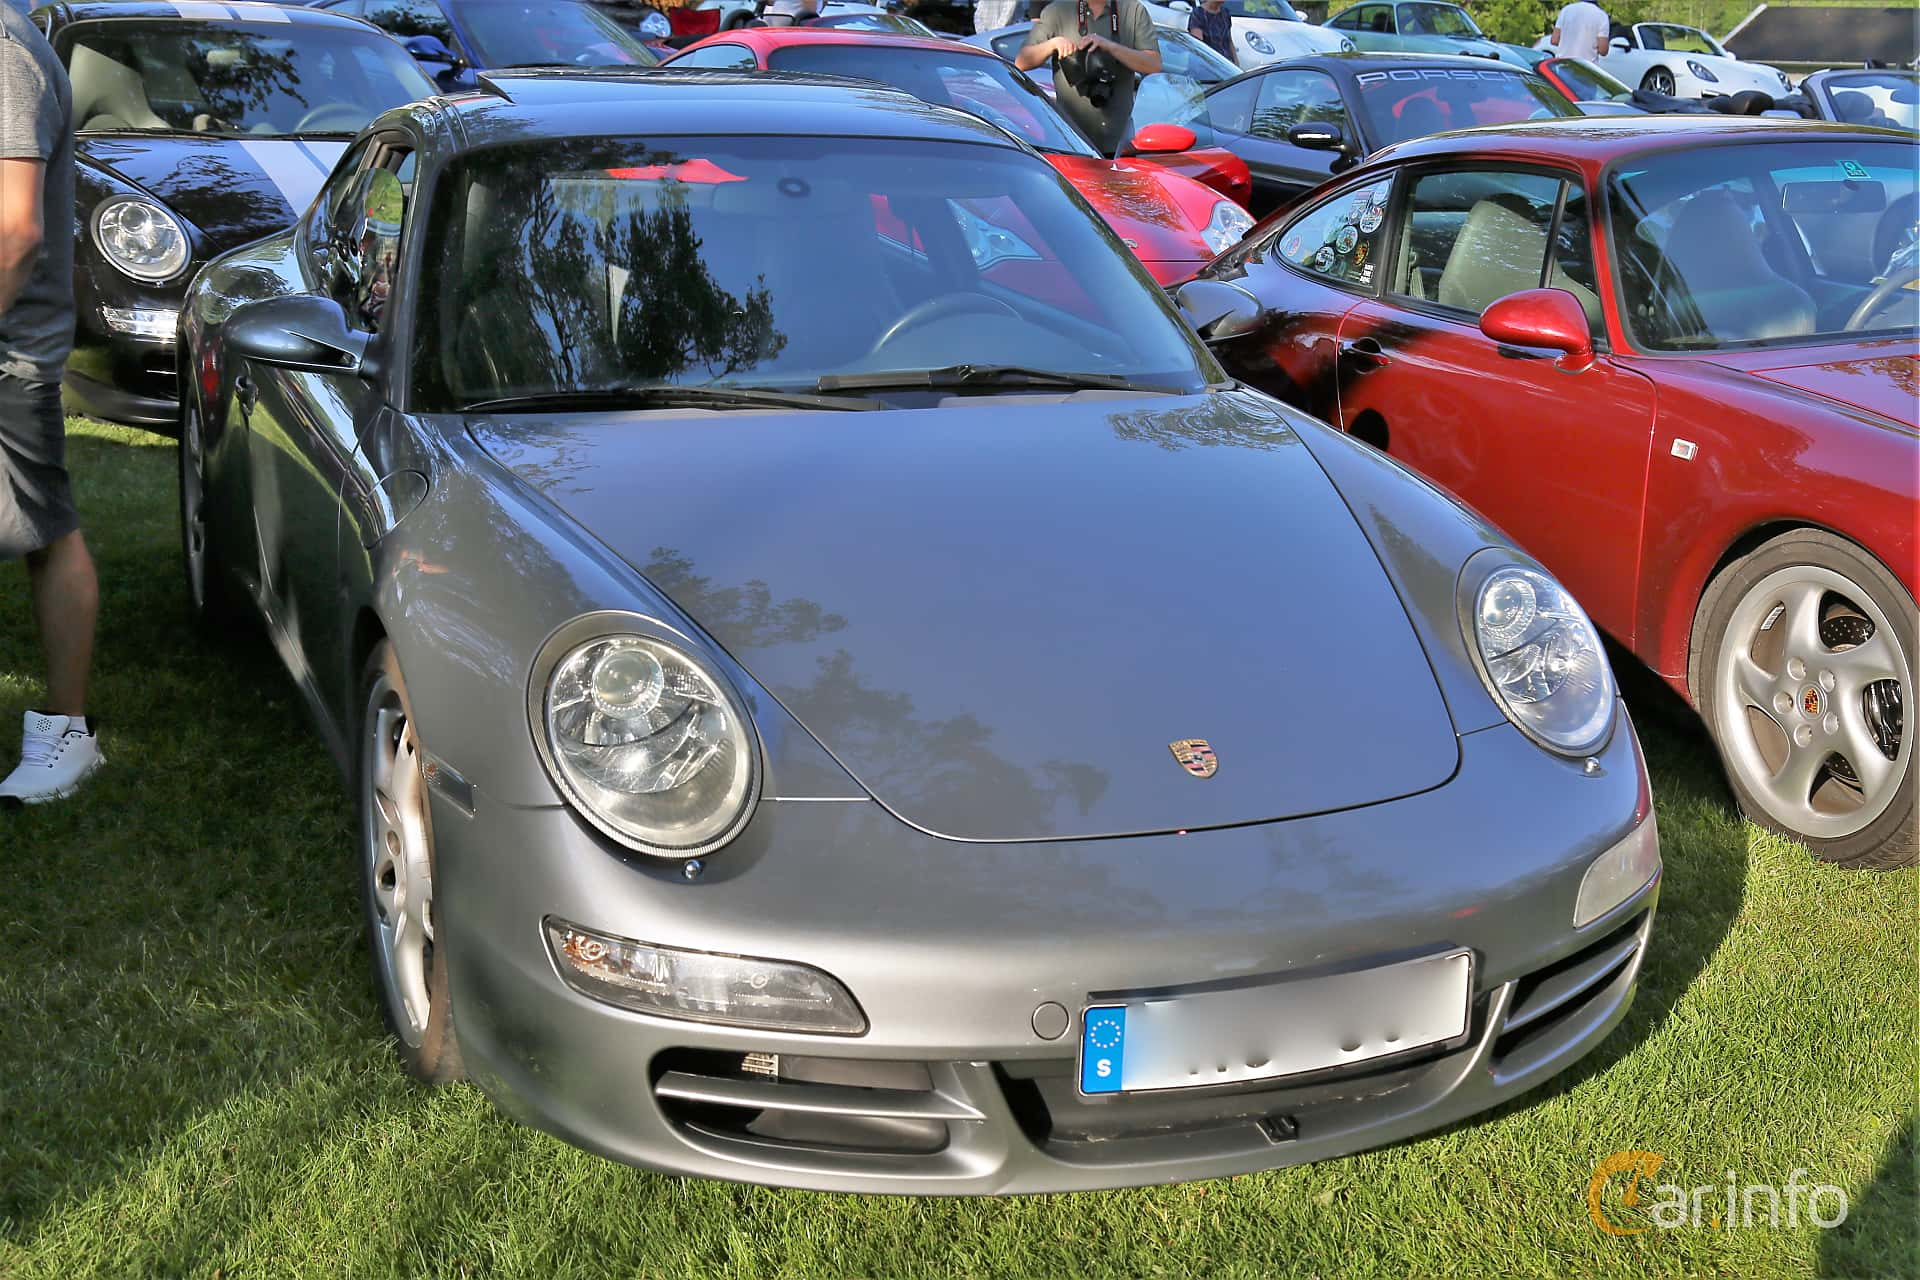 Front/Side  of Porsche 911 Carrera S 3.8 H6 Manual, 355ps, 2006 at GMHK Bilträff hos Mellanders 2019